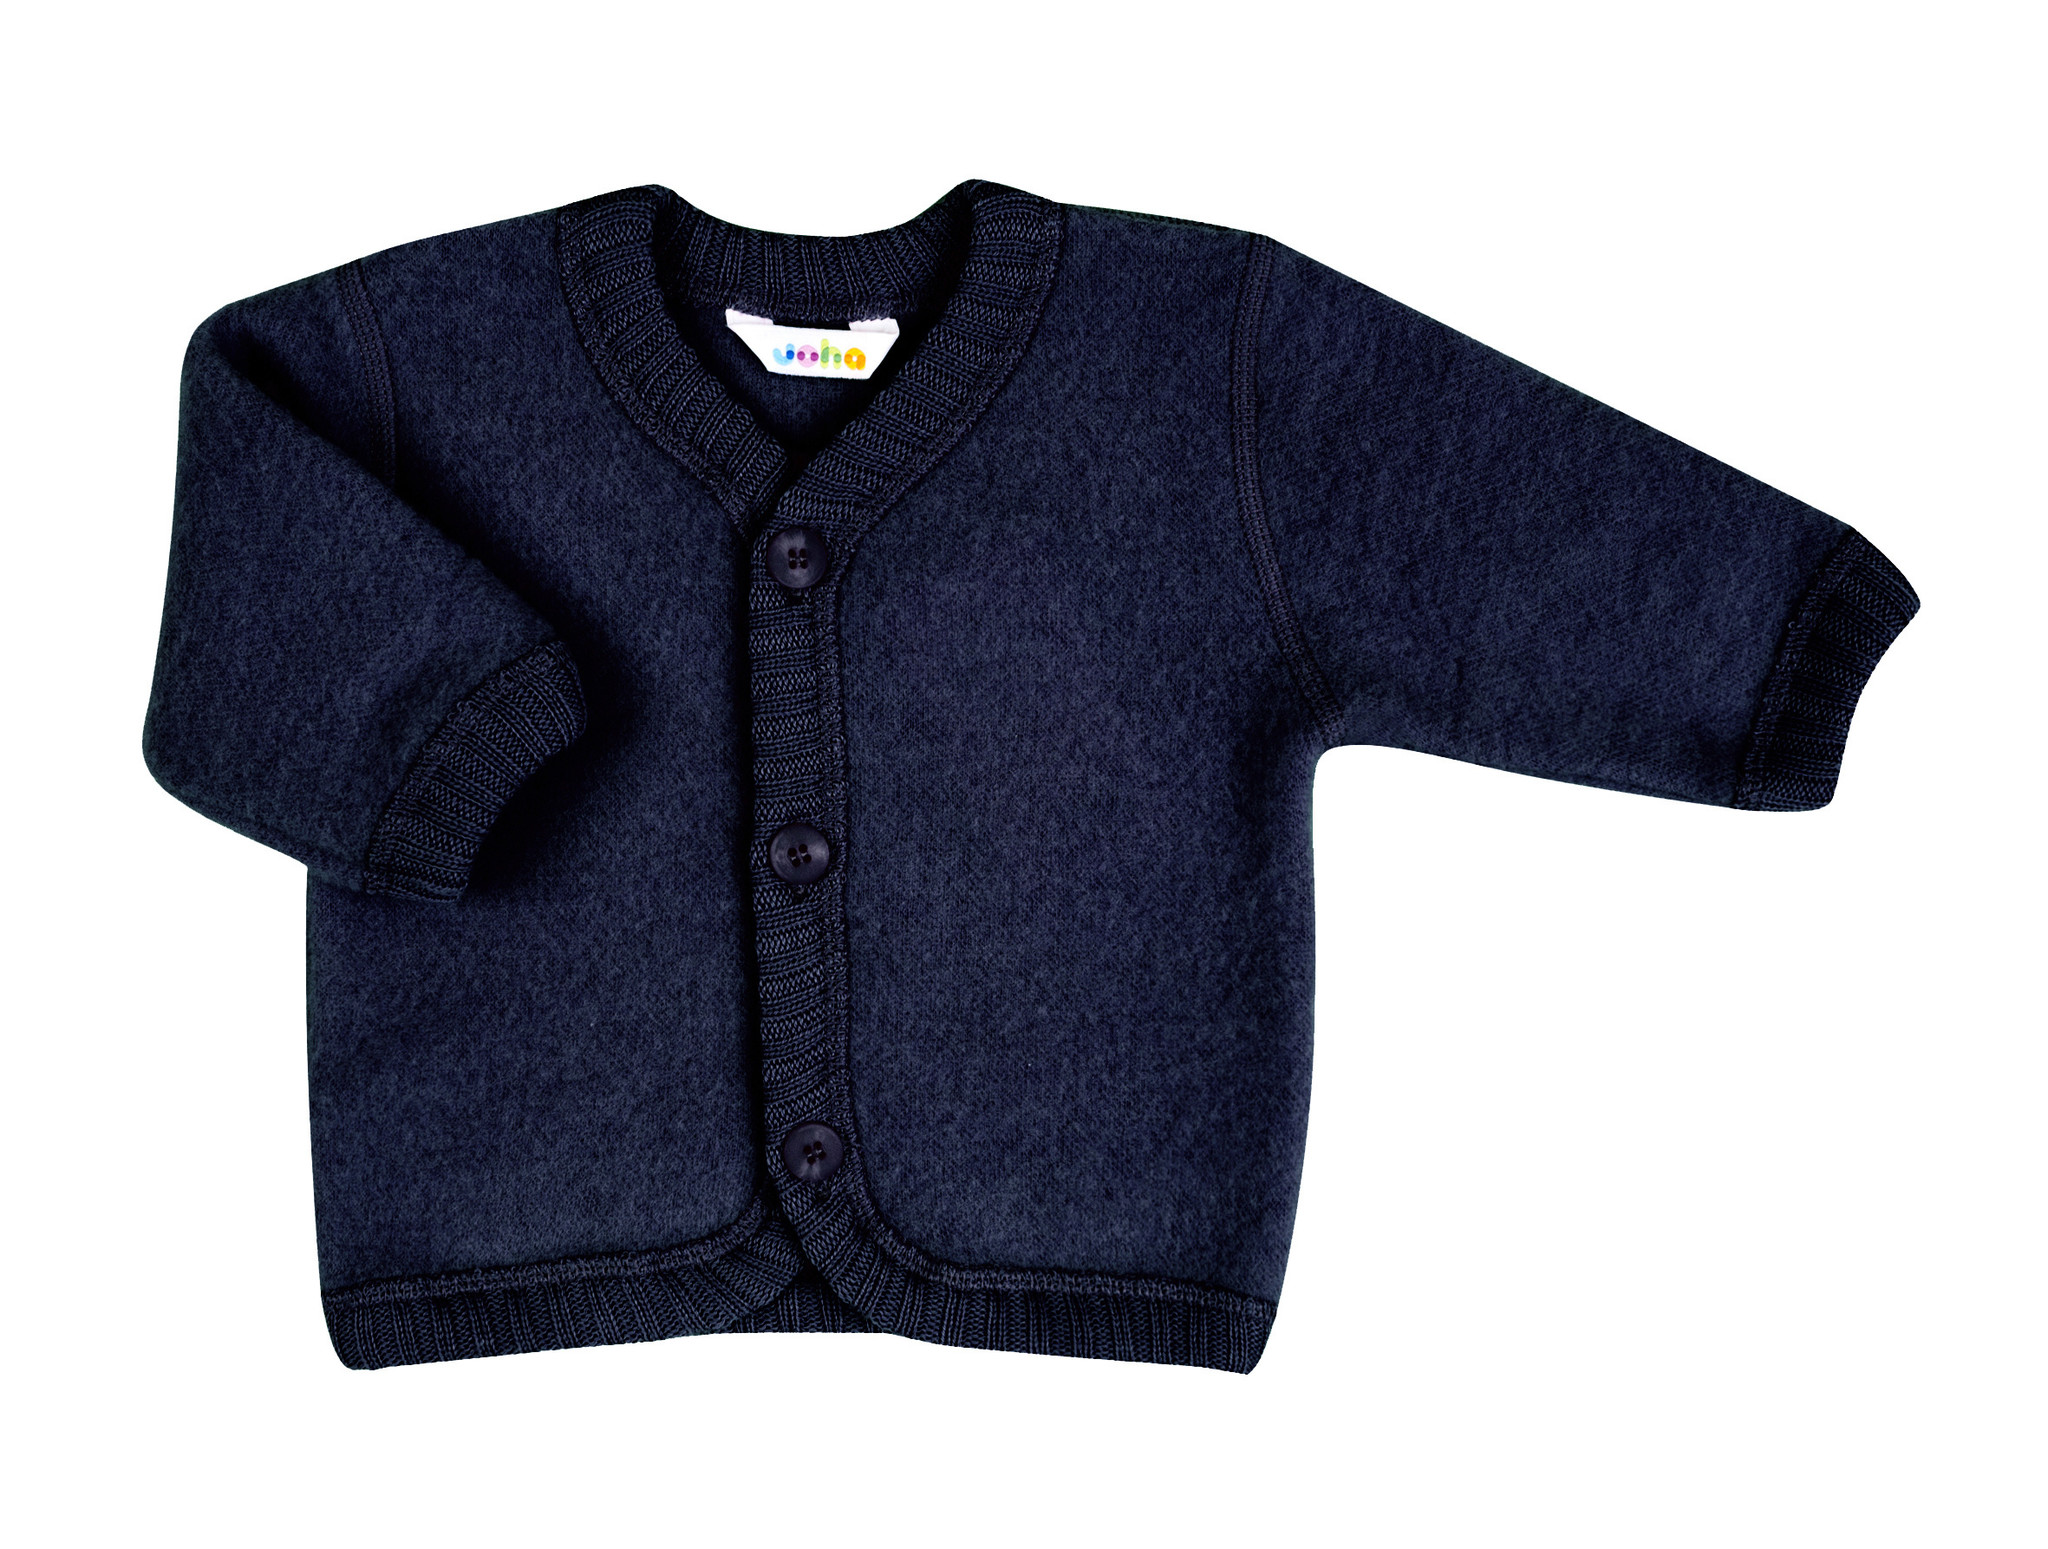 Vest with buttons - wool-fleece-2